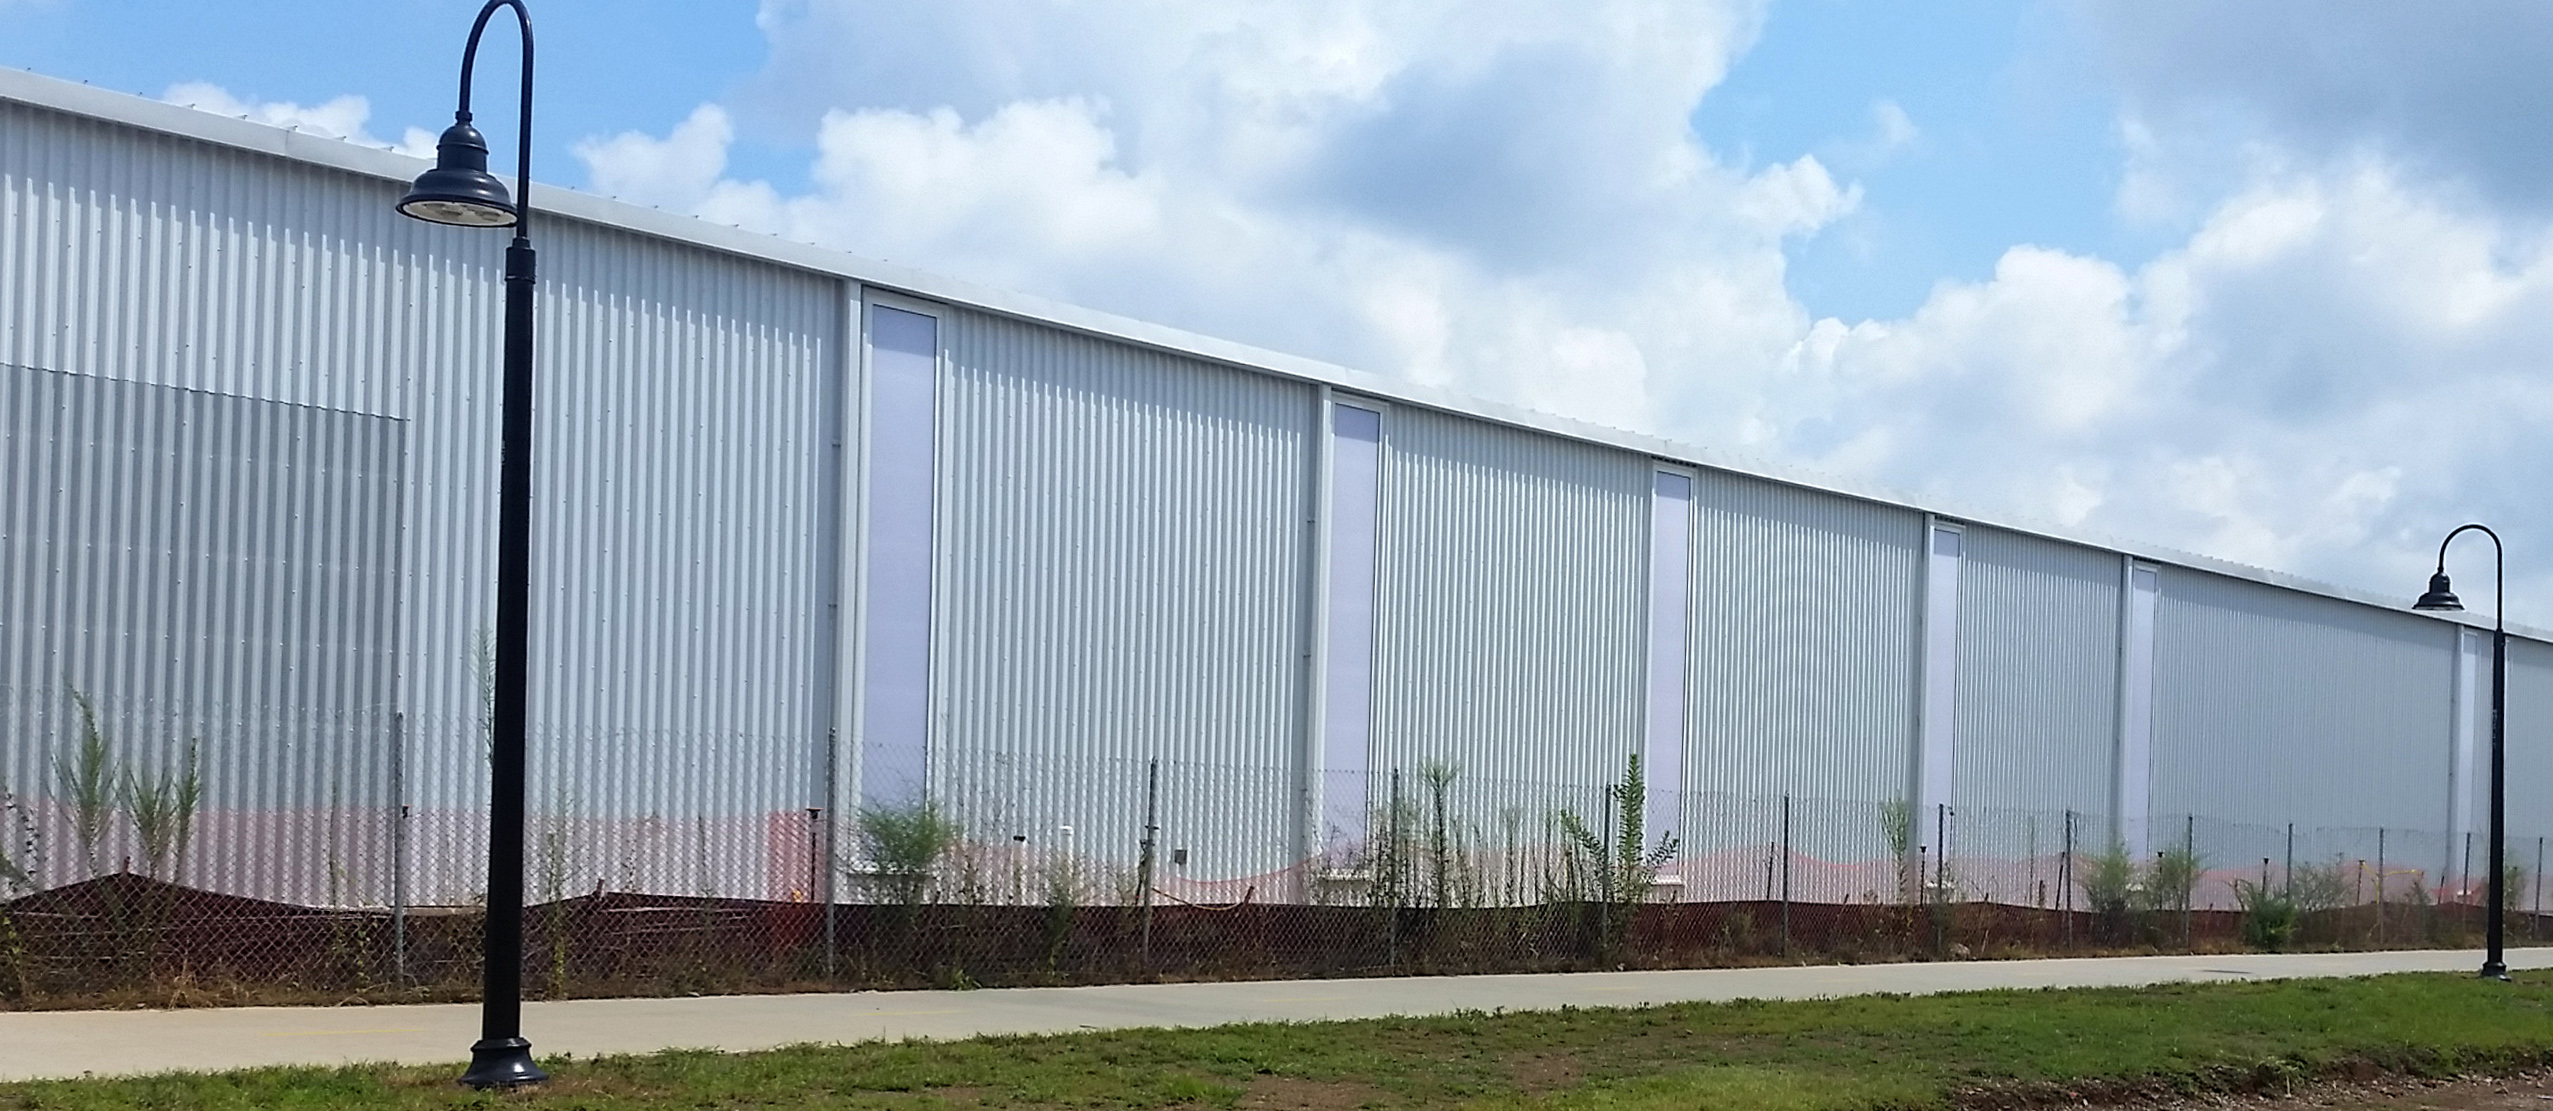 Polycarbonate Panels Were An Essential Part Of Leed